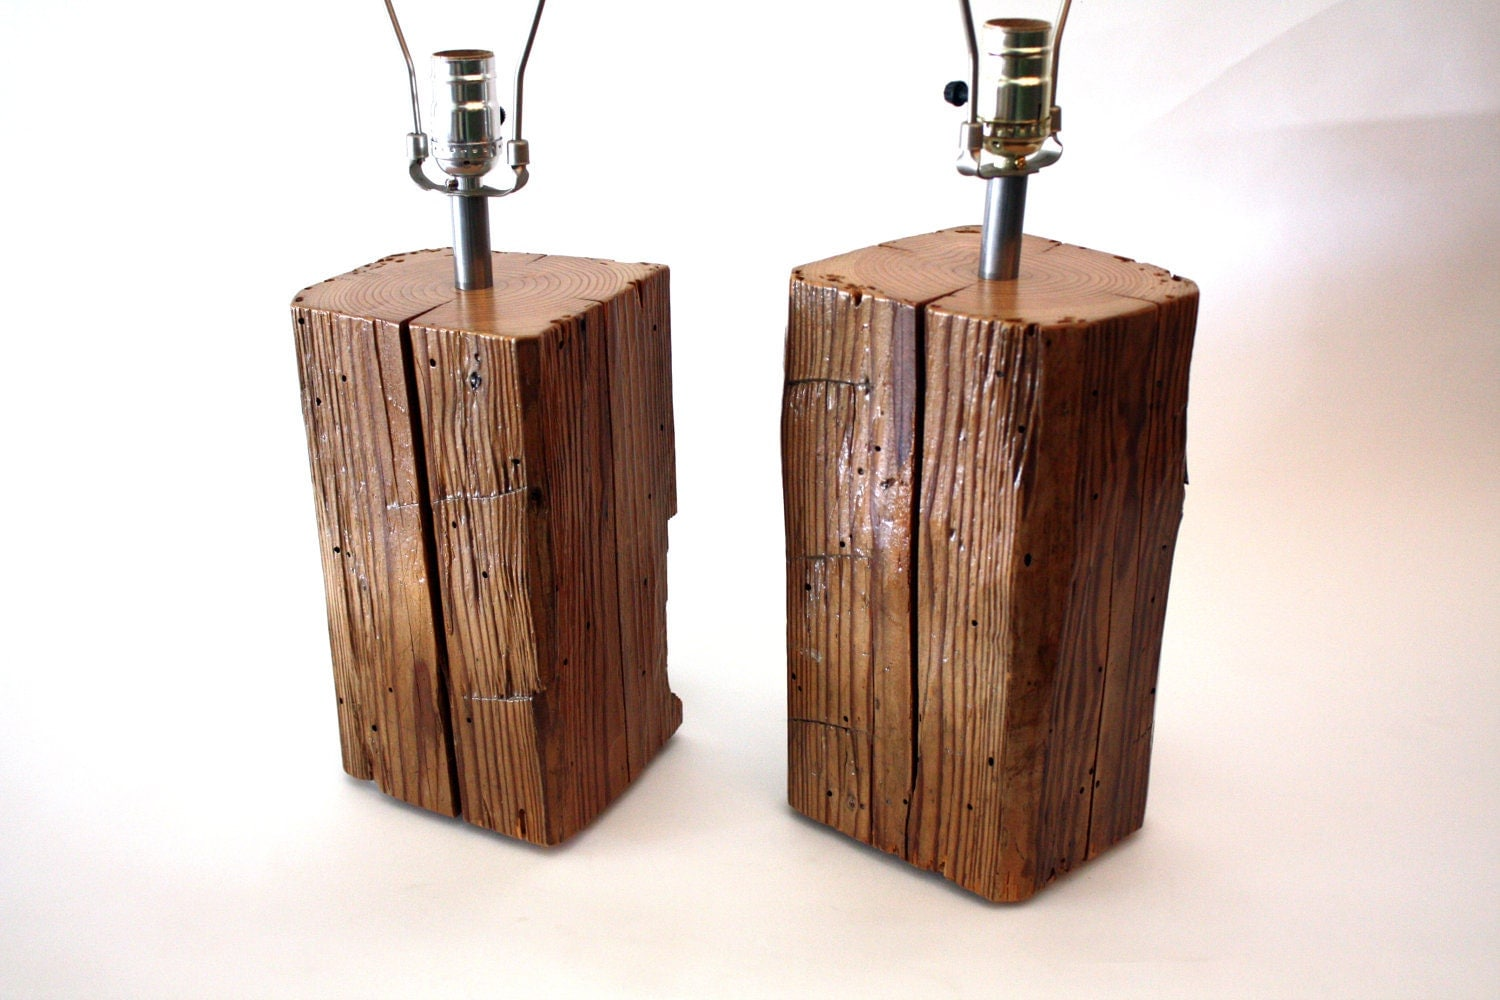 Pair Of Reclaimed Barn Wood Lamp HandREcrafted MFEO Design